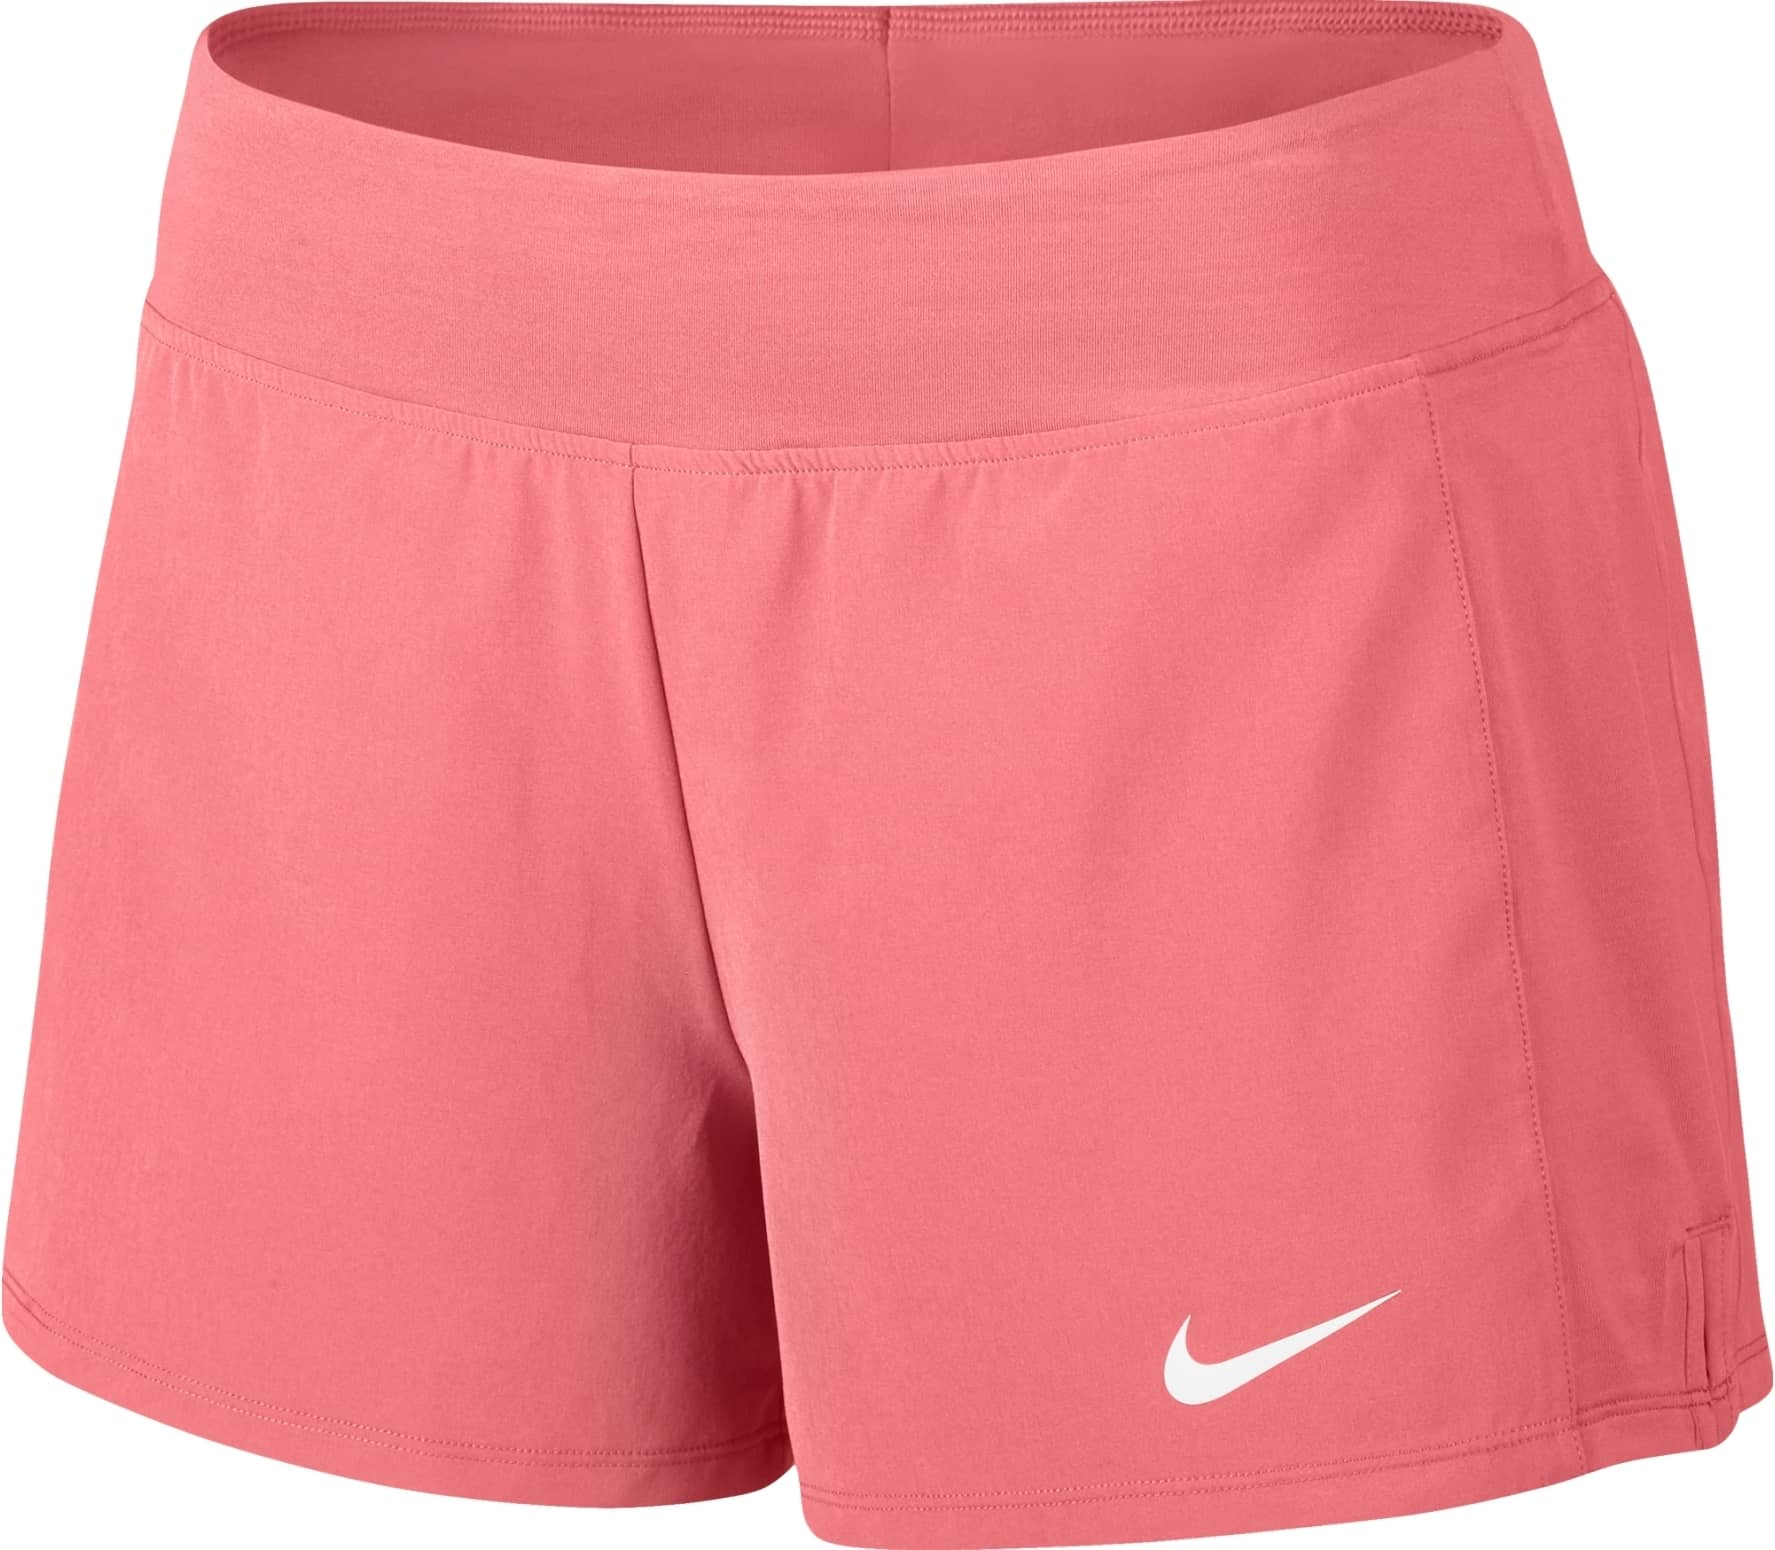 Nike - Court Flex Pure women s tennis shorts (pink) - buy it at the ... 841e34fd6